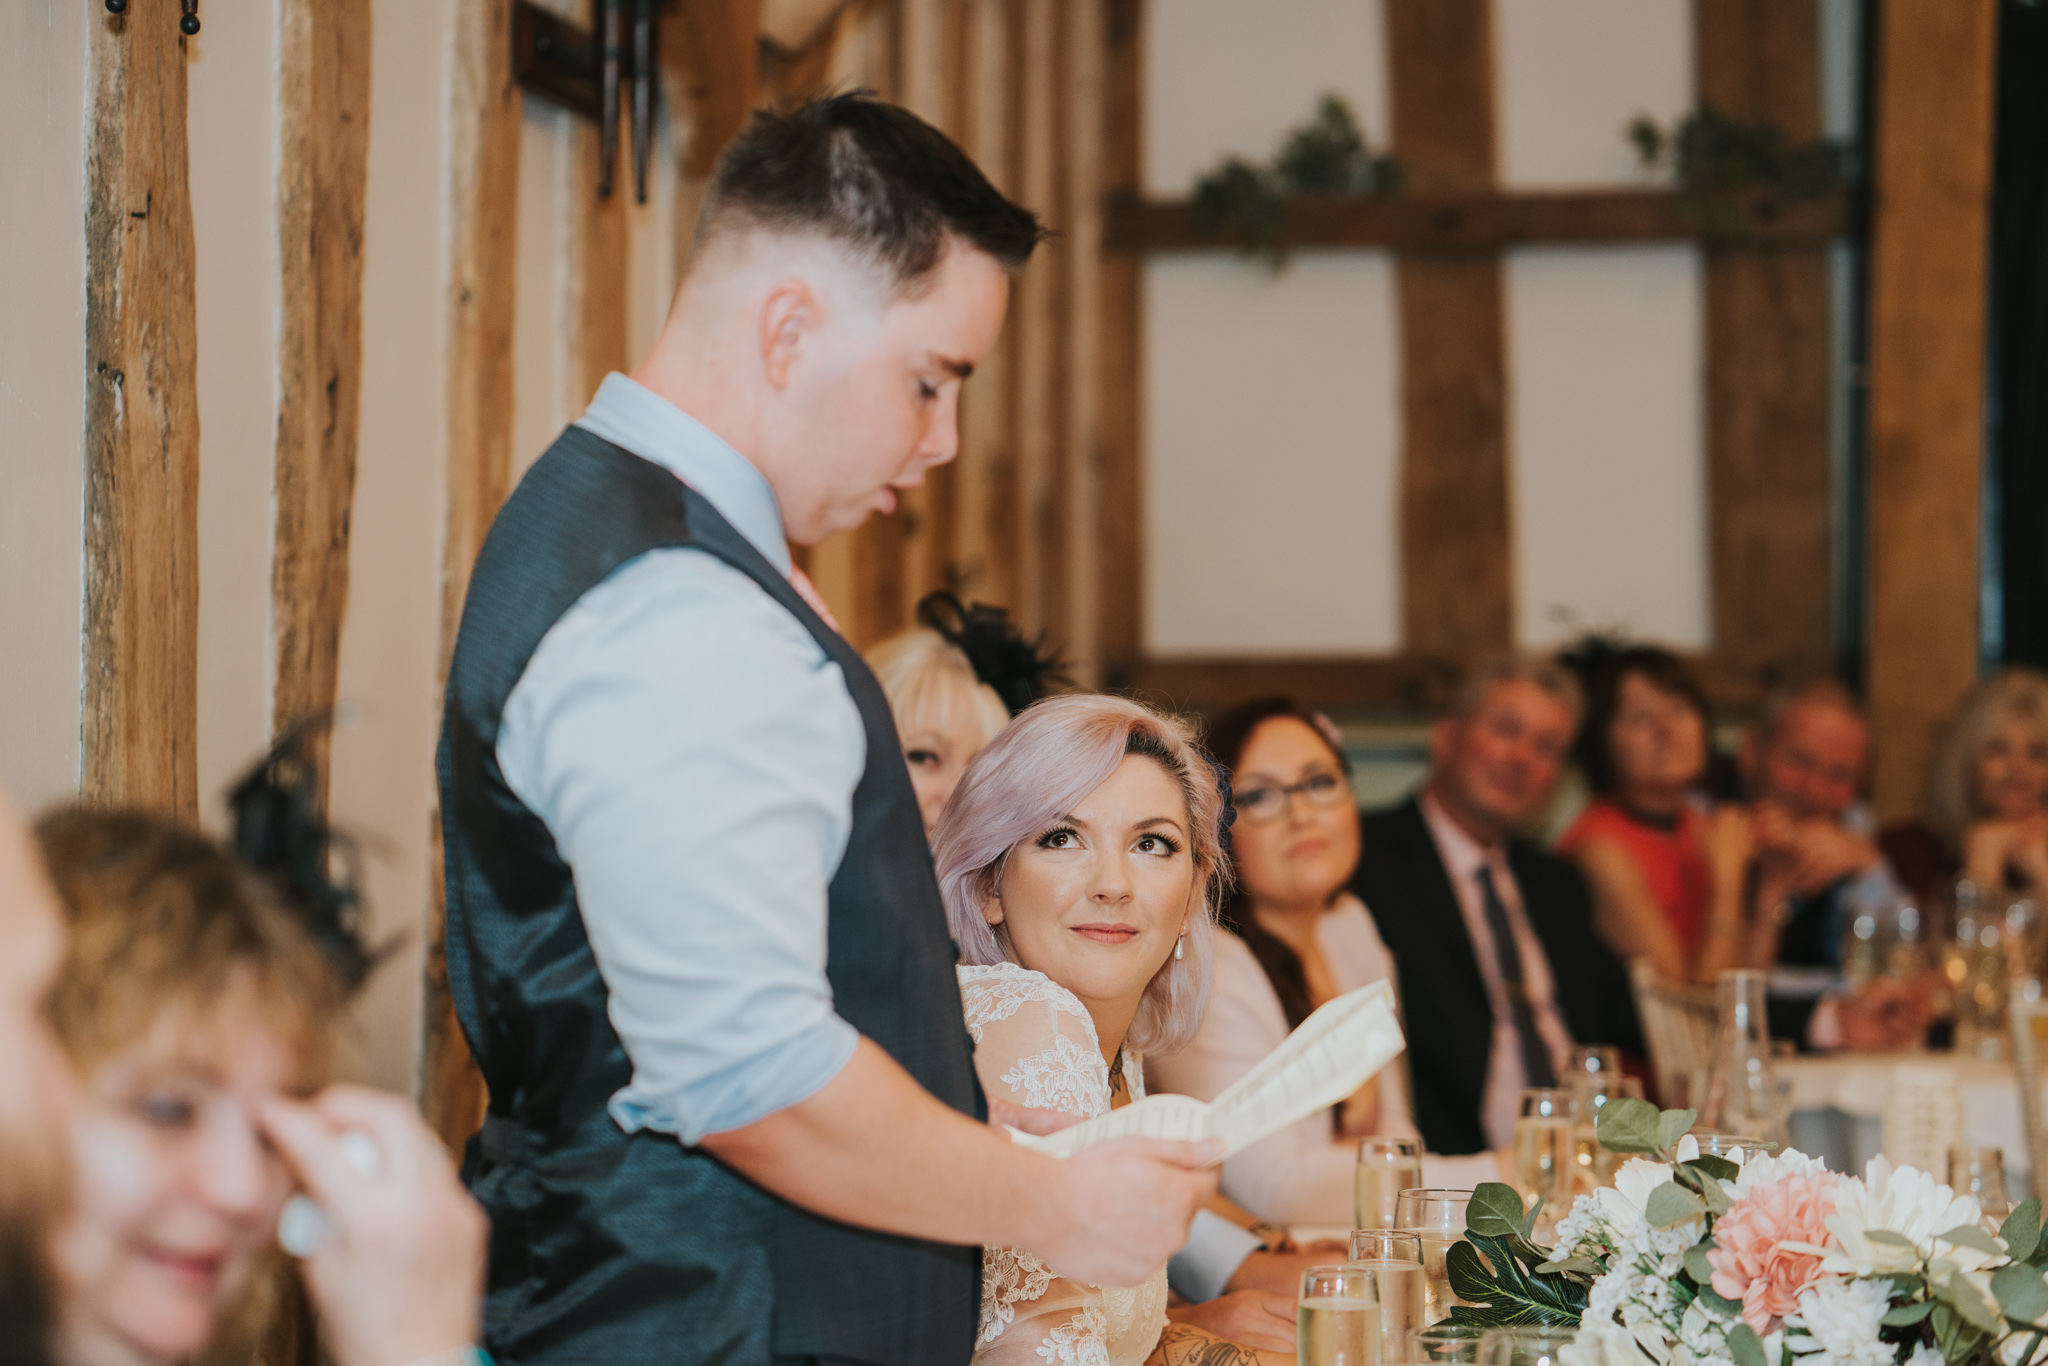 rhia-james-rustic-crabbs-barn-vintage-50s-retro-wedding-grace-elizabeth-colchester-essex-alternative-relaxed-wedding-family-photography-devon-suffolk-norfolk-essex (122 of 138).jpg